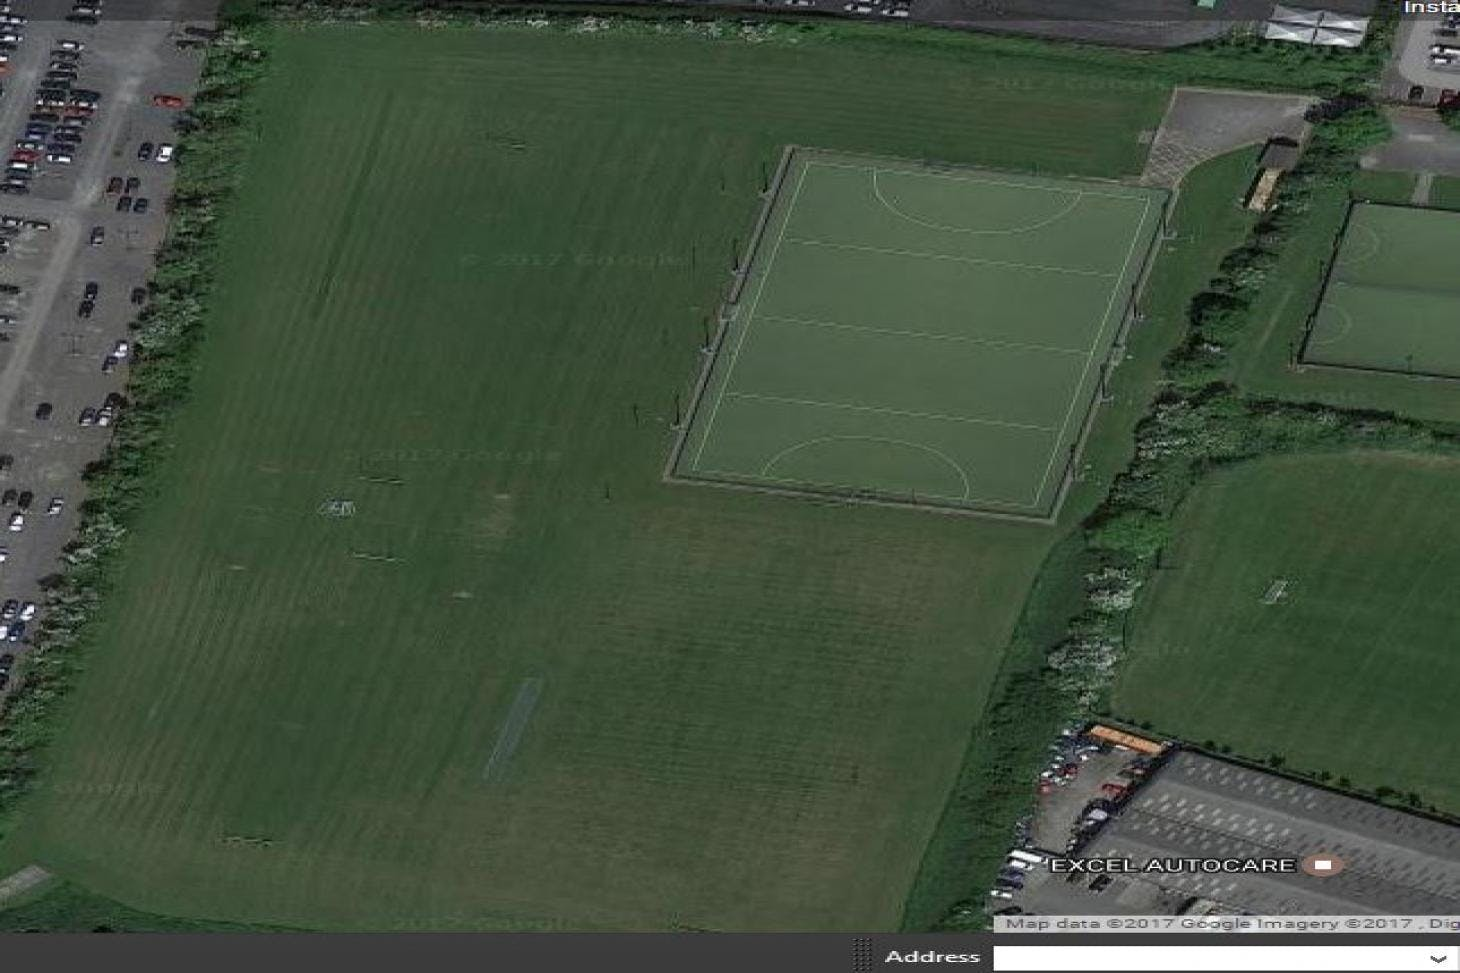 Royal College of Surgeons Sports Grounds Full size | Grass gaa pitch